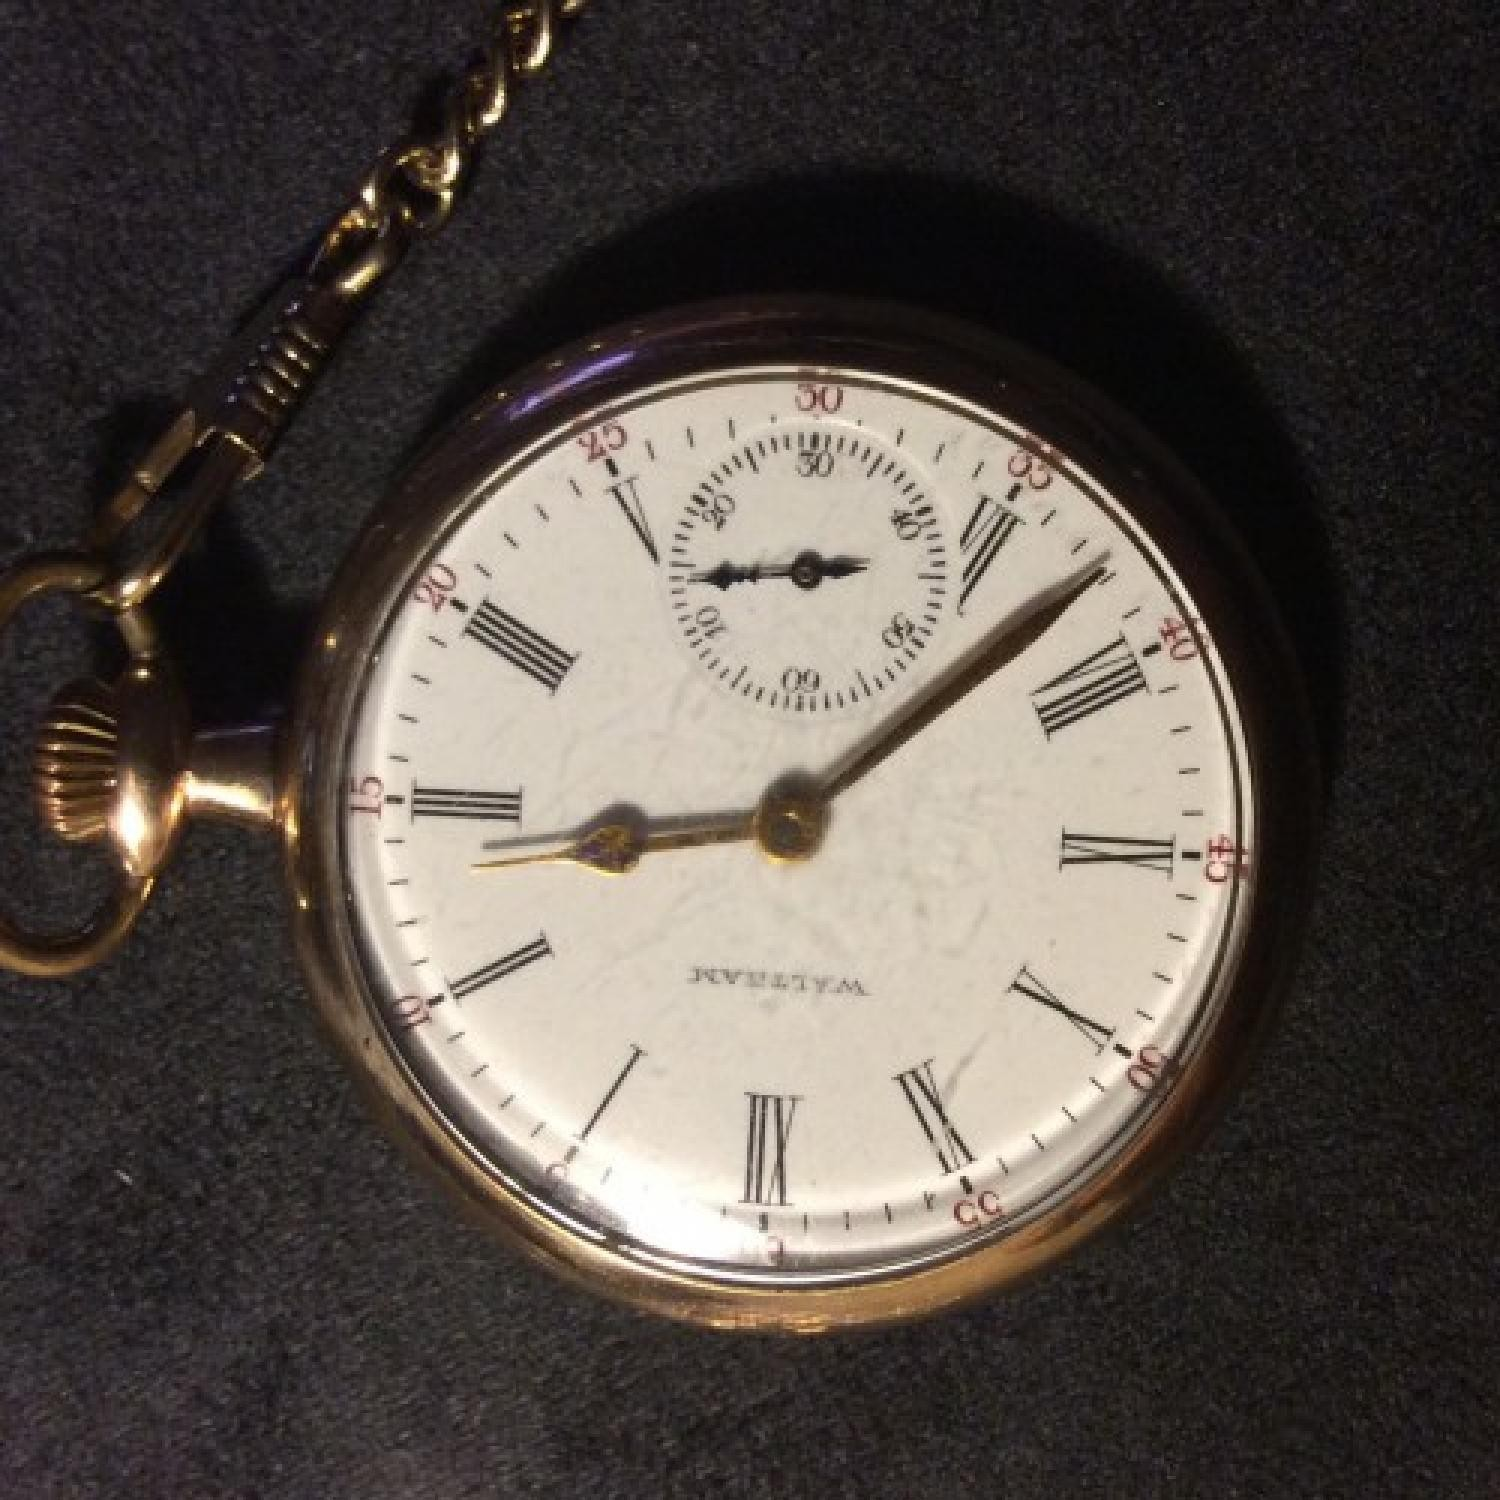 Image of Waltham No. 28 #7797750 Dial